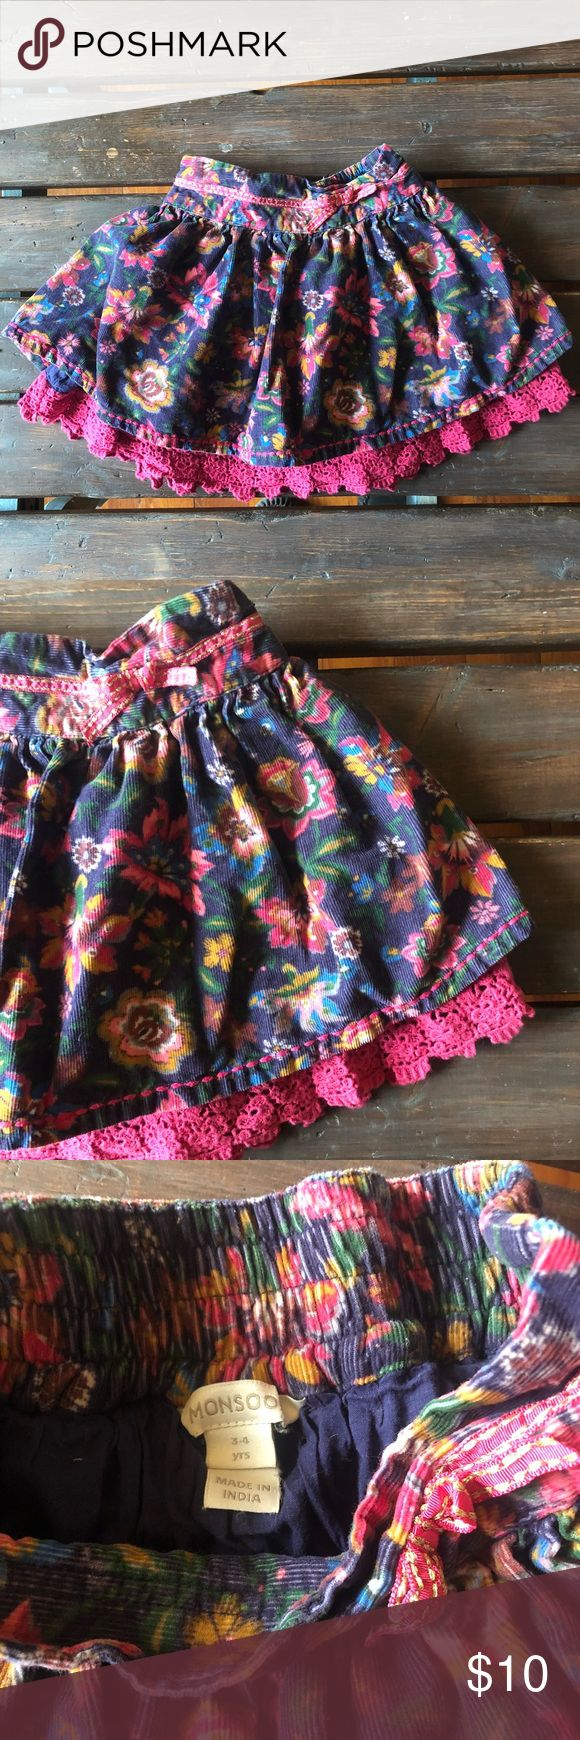 Monsoon floral and layered skirt Vguc! So so cute. Size 3/4y Monsoon Bottoms Skirts